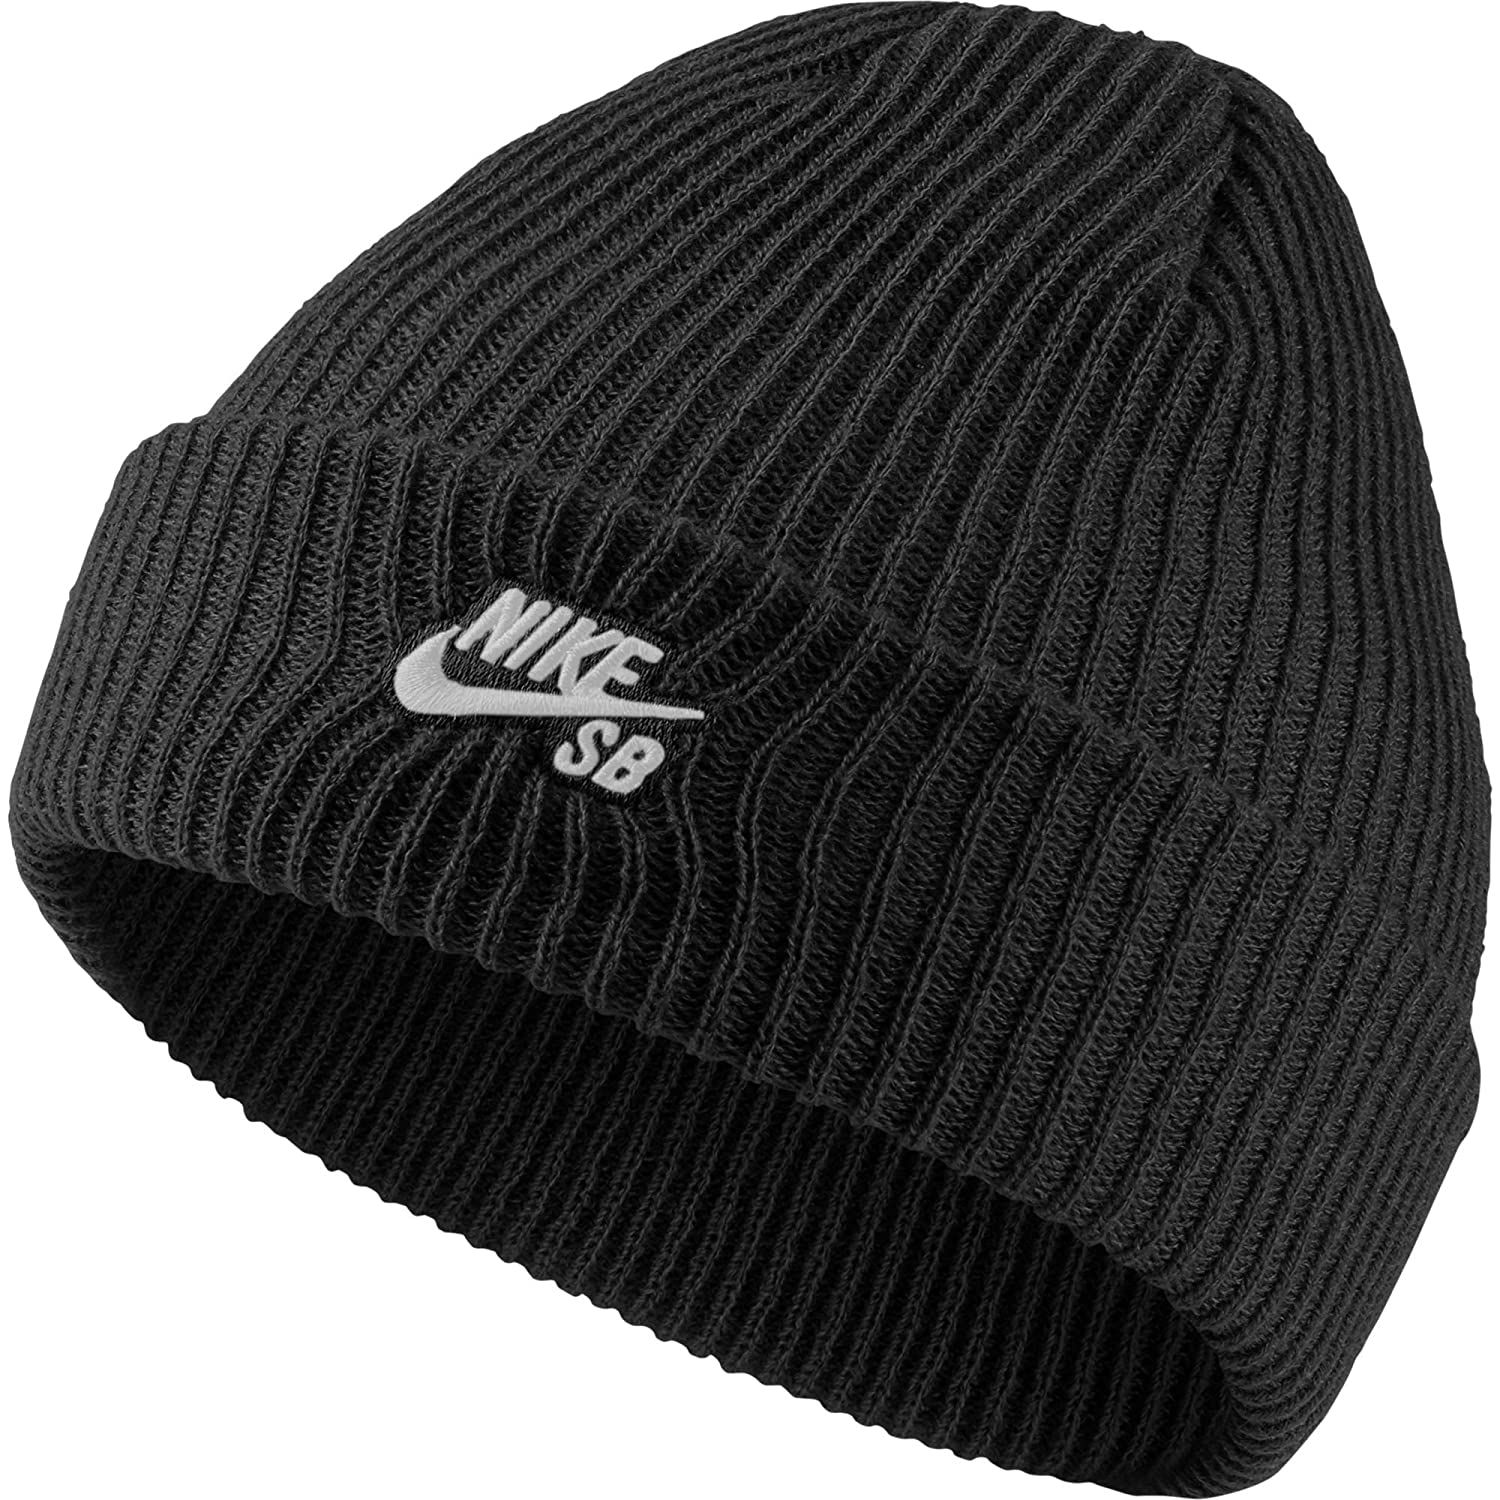 1f0ffe9f535830 Nike Sb Fisherman Beanie, Hat Unisex Adult, Multicolor (Black / White), One  Size: Amazon.co.uk: Shoes & Bags